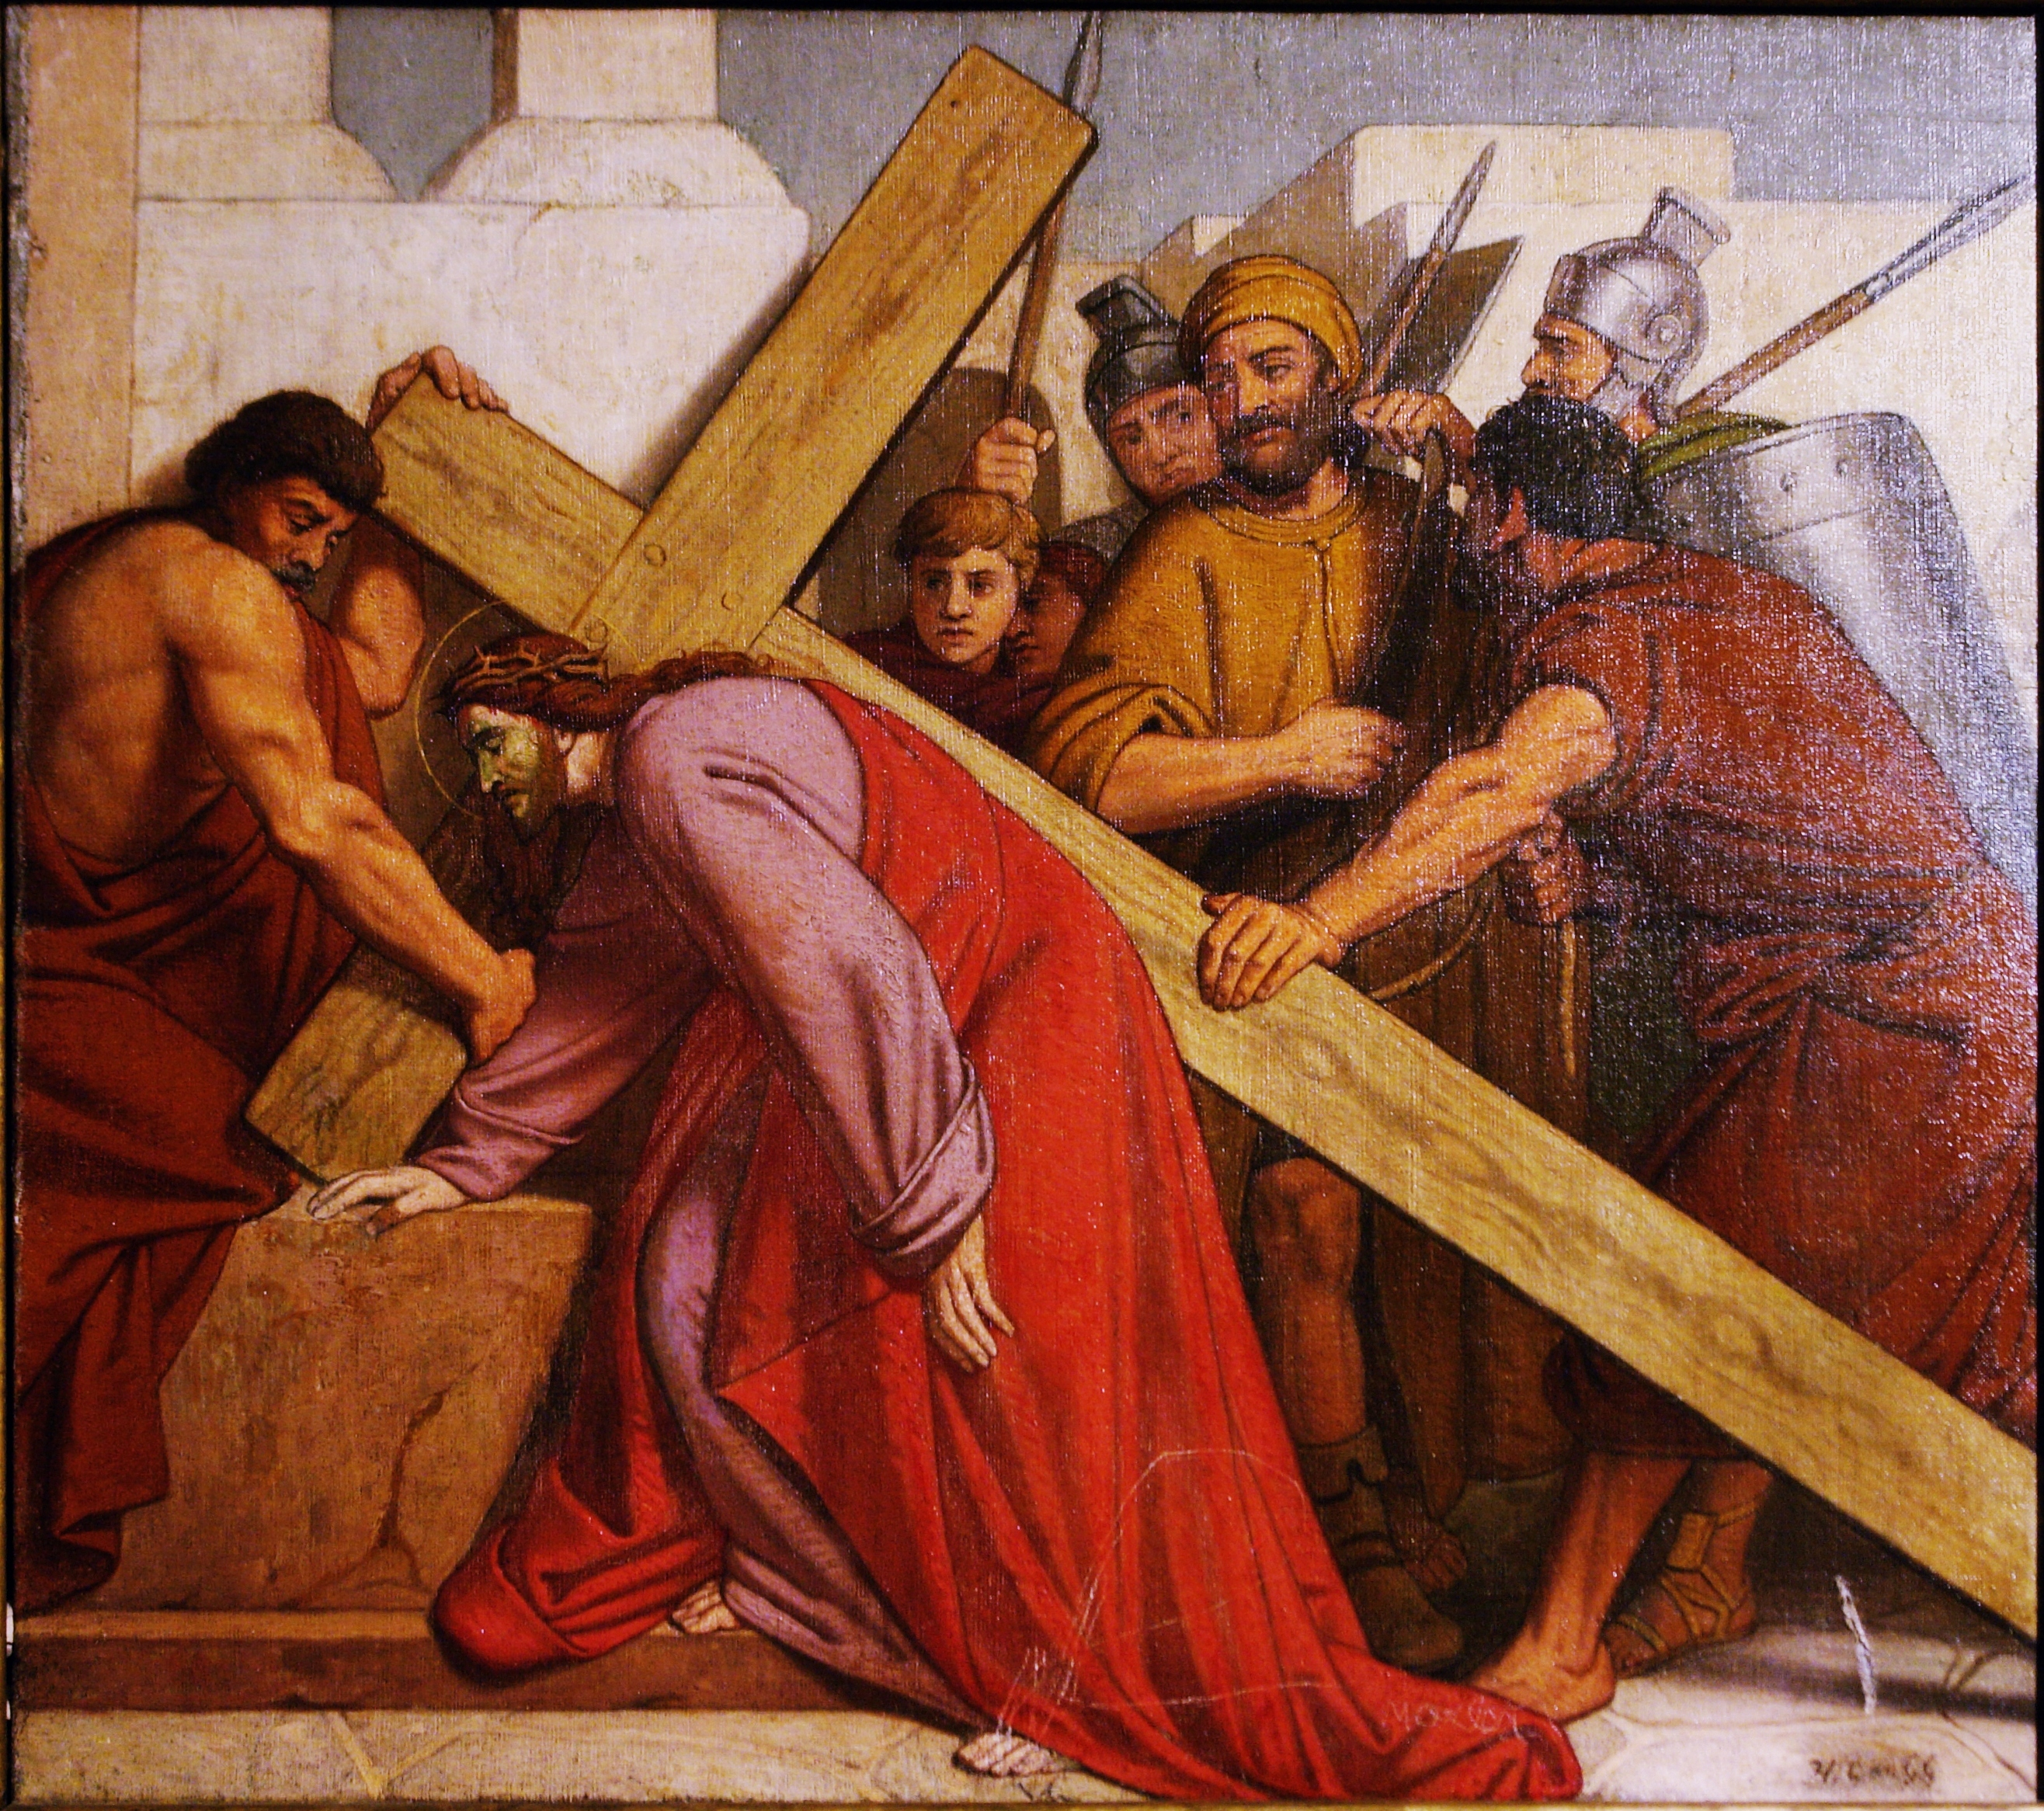 The most common Lent Tradition, The Stations of the Cross.